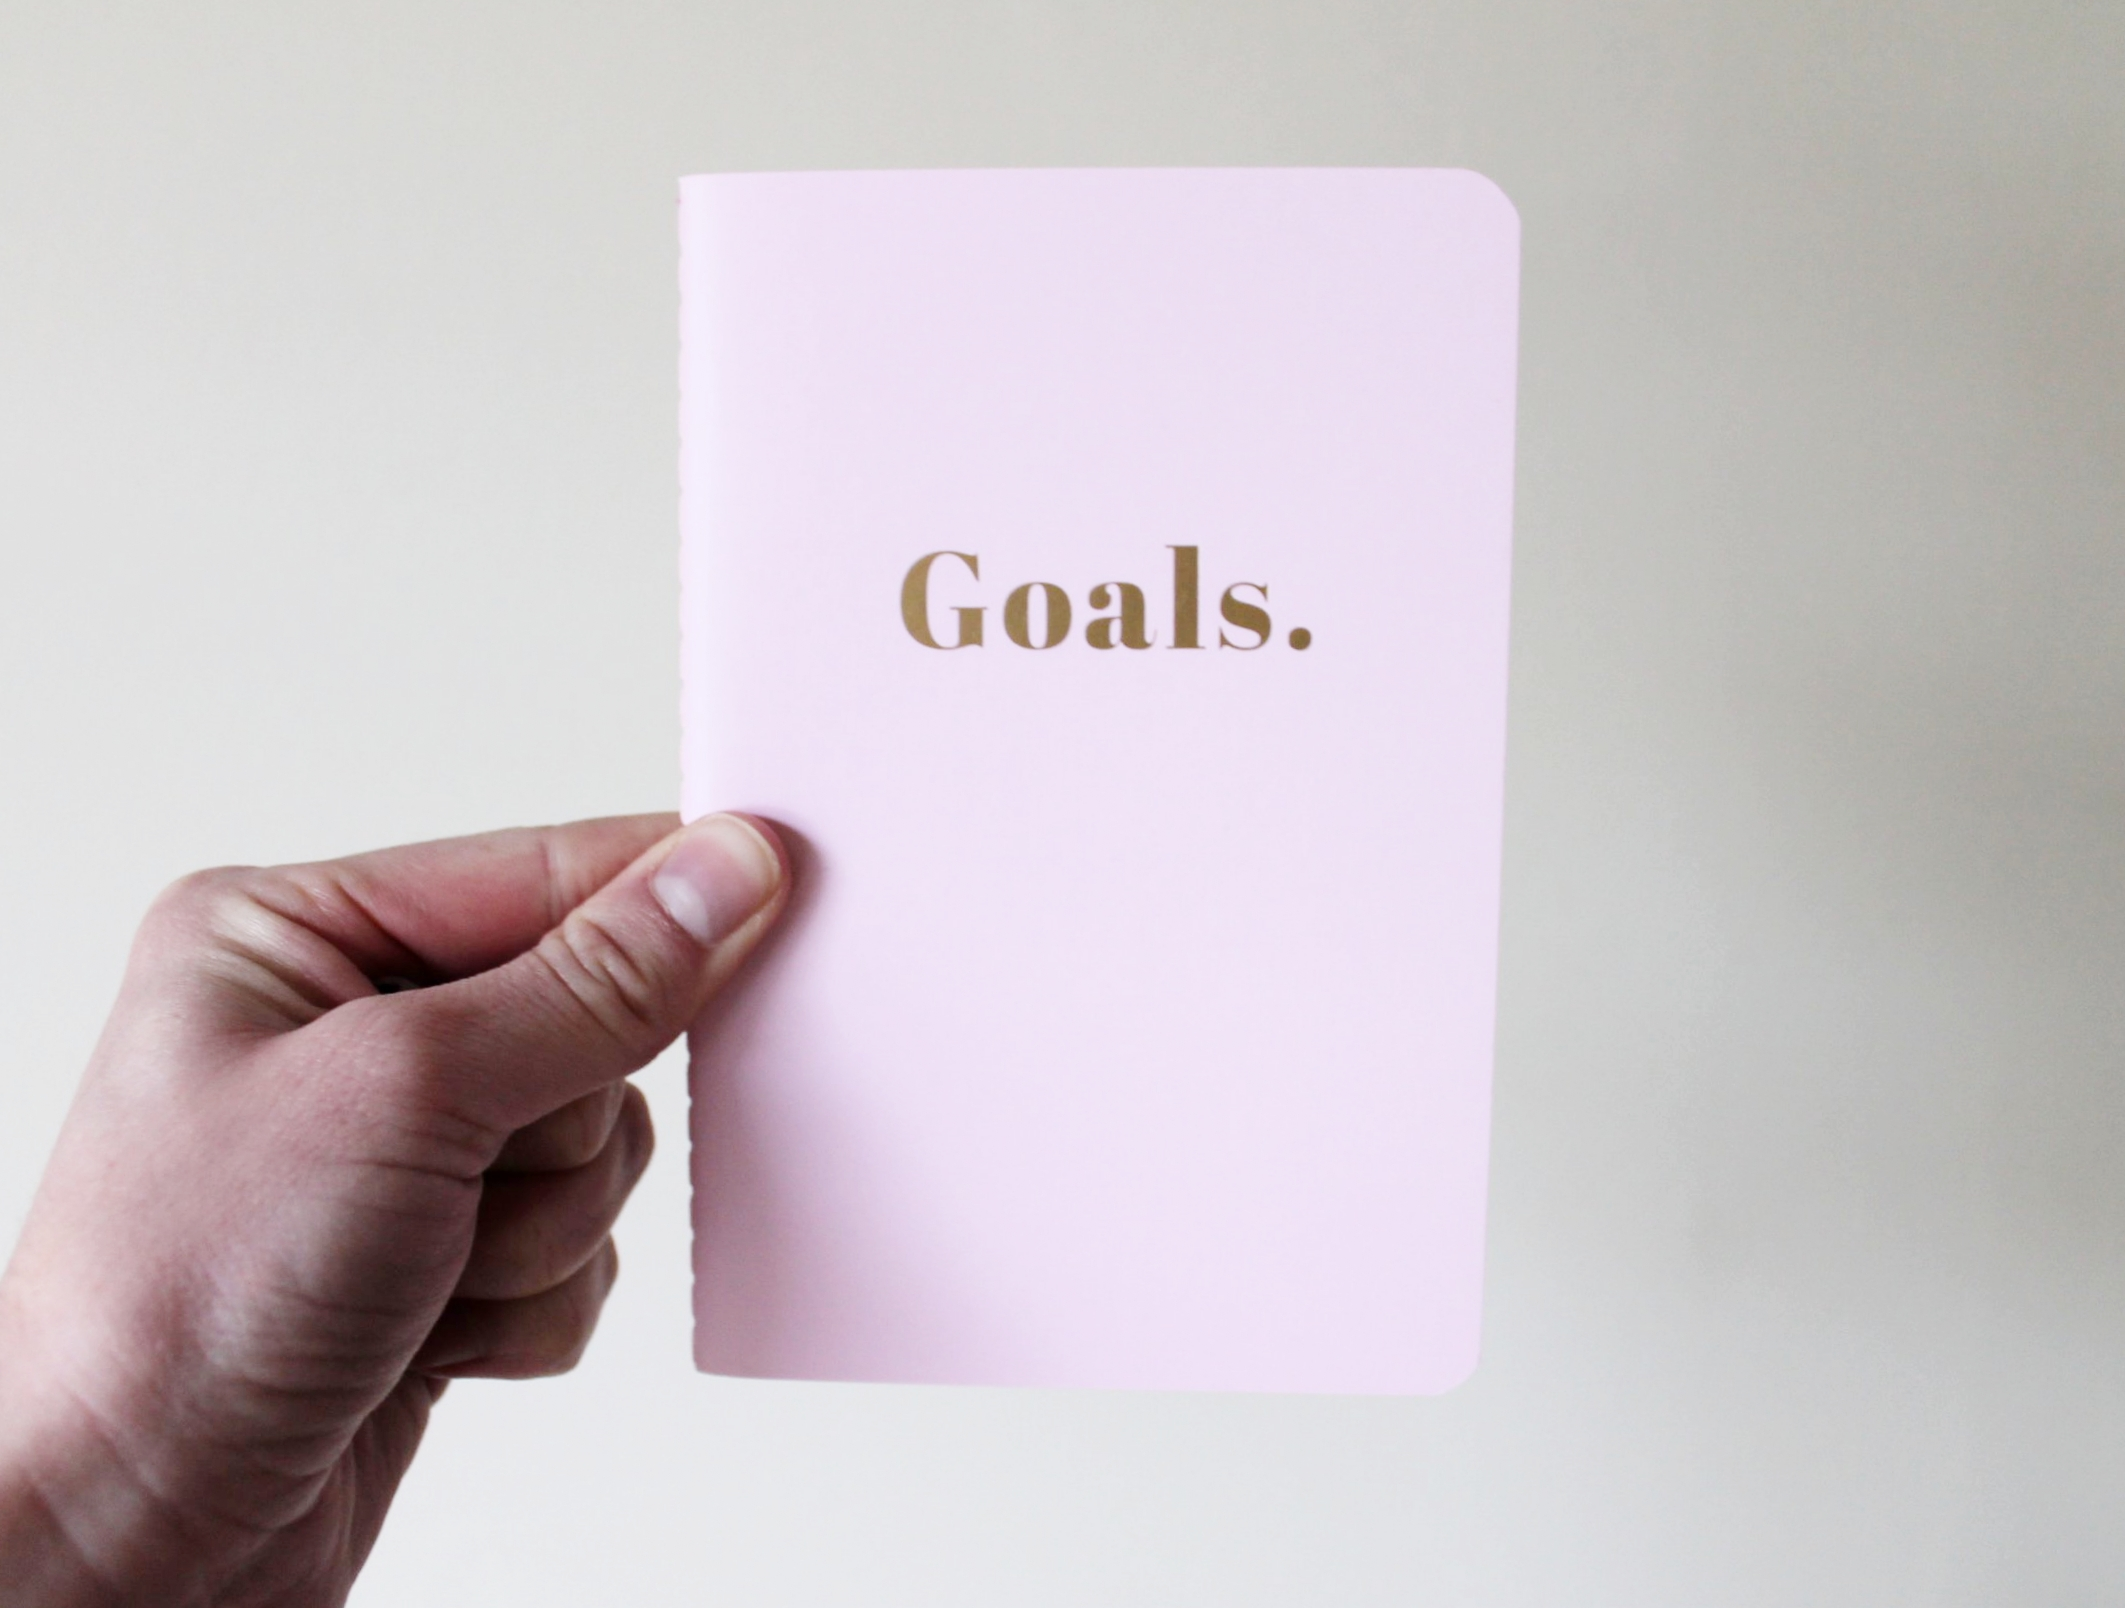 I love this goal notebook my friend gave me- writing my goals down on paper makes them seem more offical!